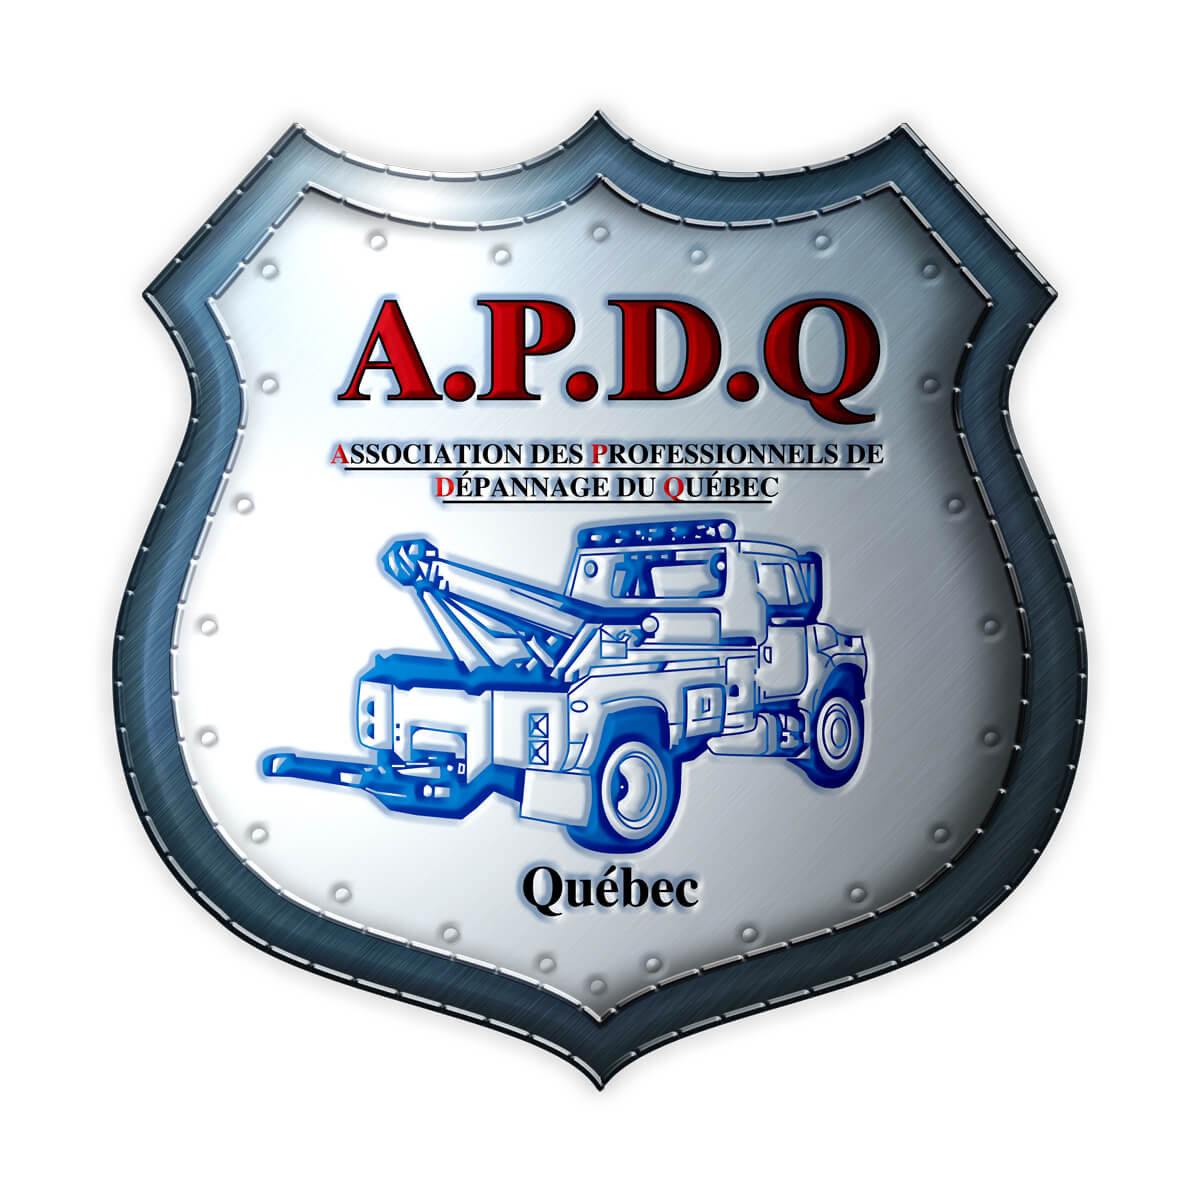 APDQ Transport Magazine TM affiliation